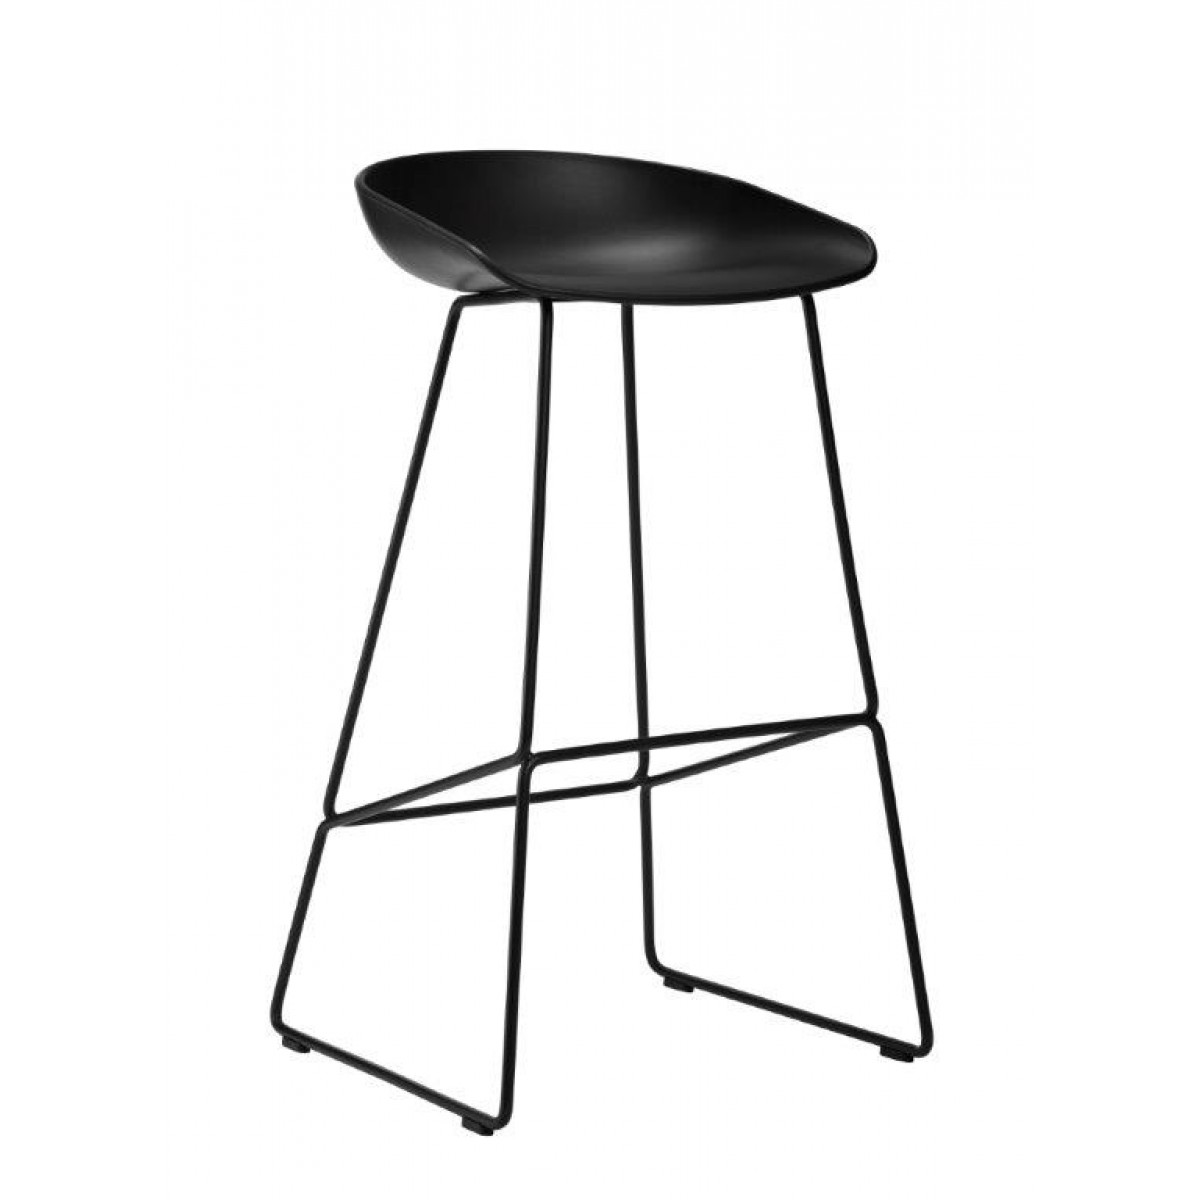 Designer Stühle Klassiker Hay About A Stool Aas38 / Aal Low Or Aal High | Von